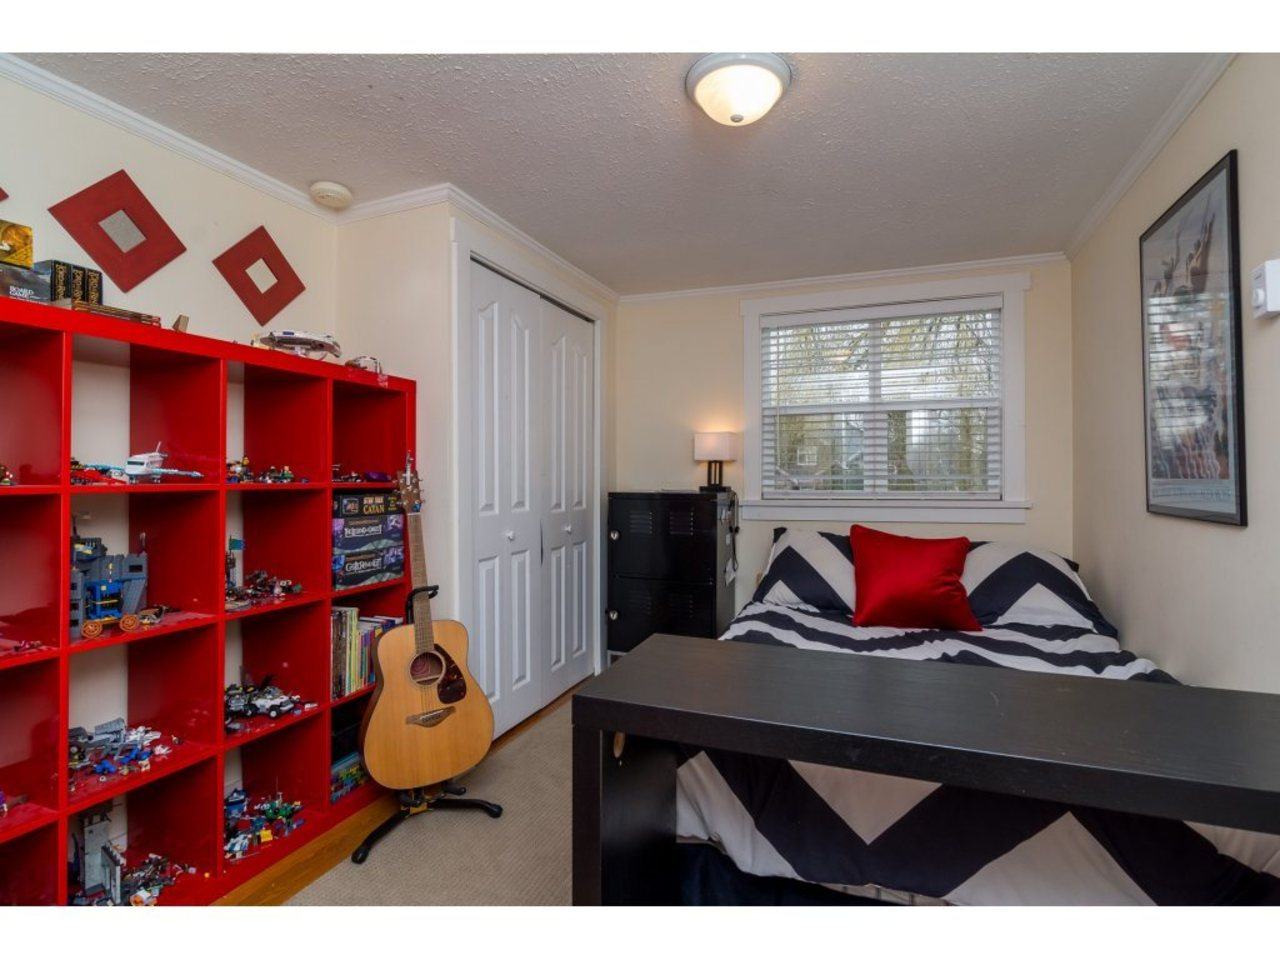 Bedroom #2-Listed by Solon REM, Top Langley & Fraser Valley Realtor  at 7498 116a, Scottsdale, N. Delta